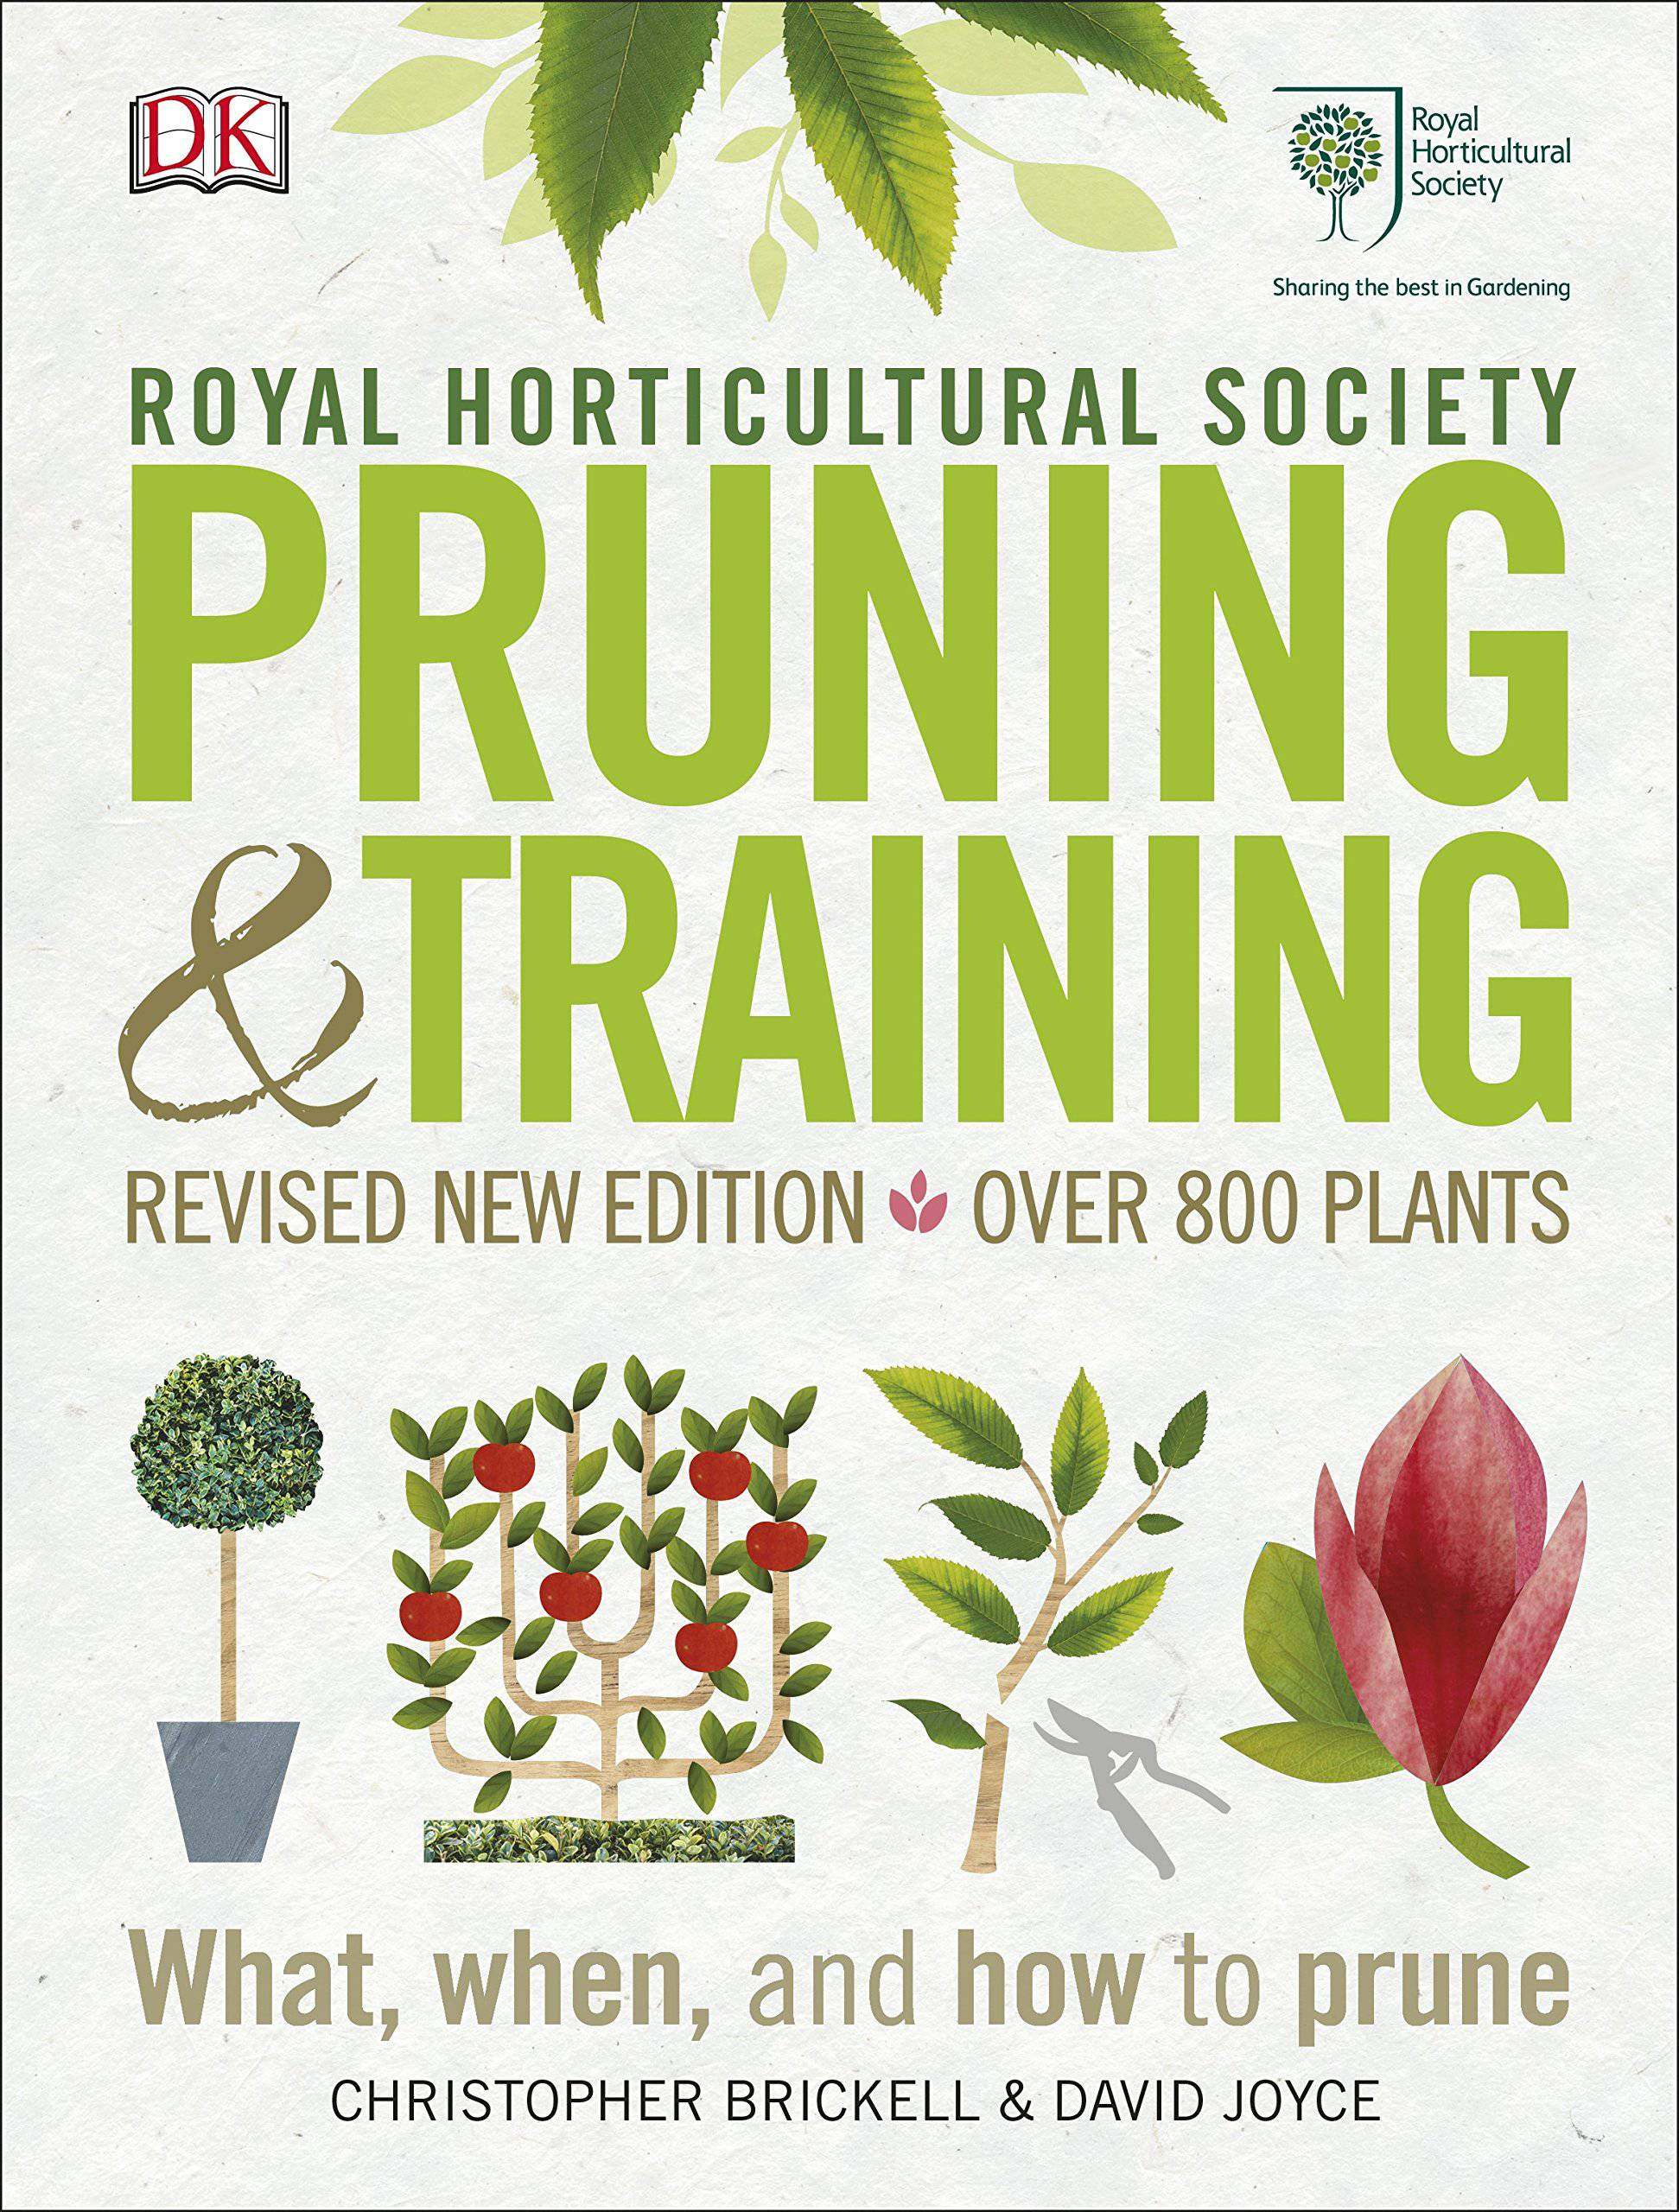 Royal Horticultural Society Pruning and training by Christopher Brickell & David Joyce